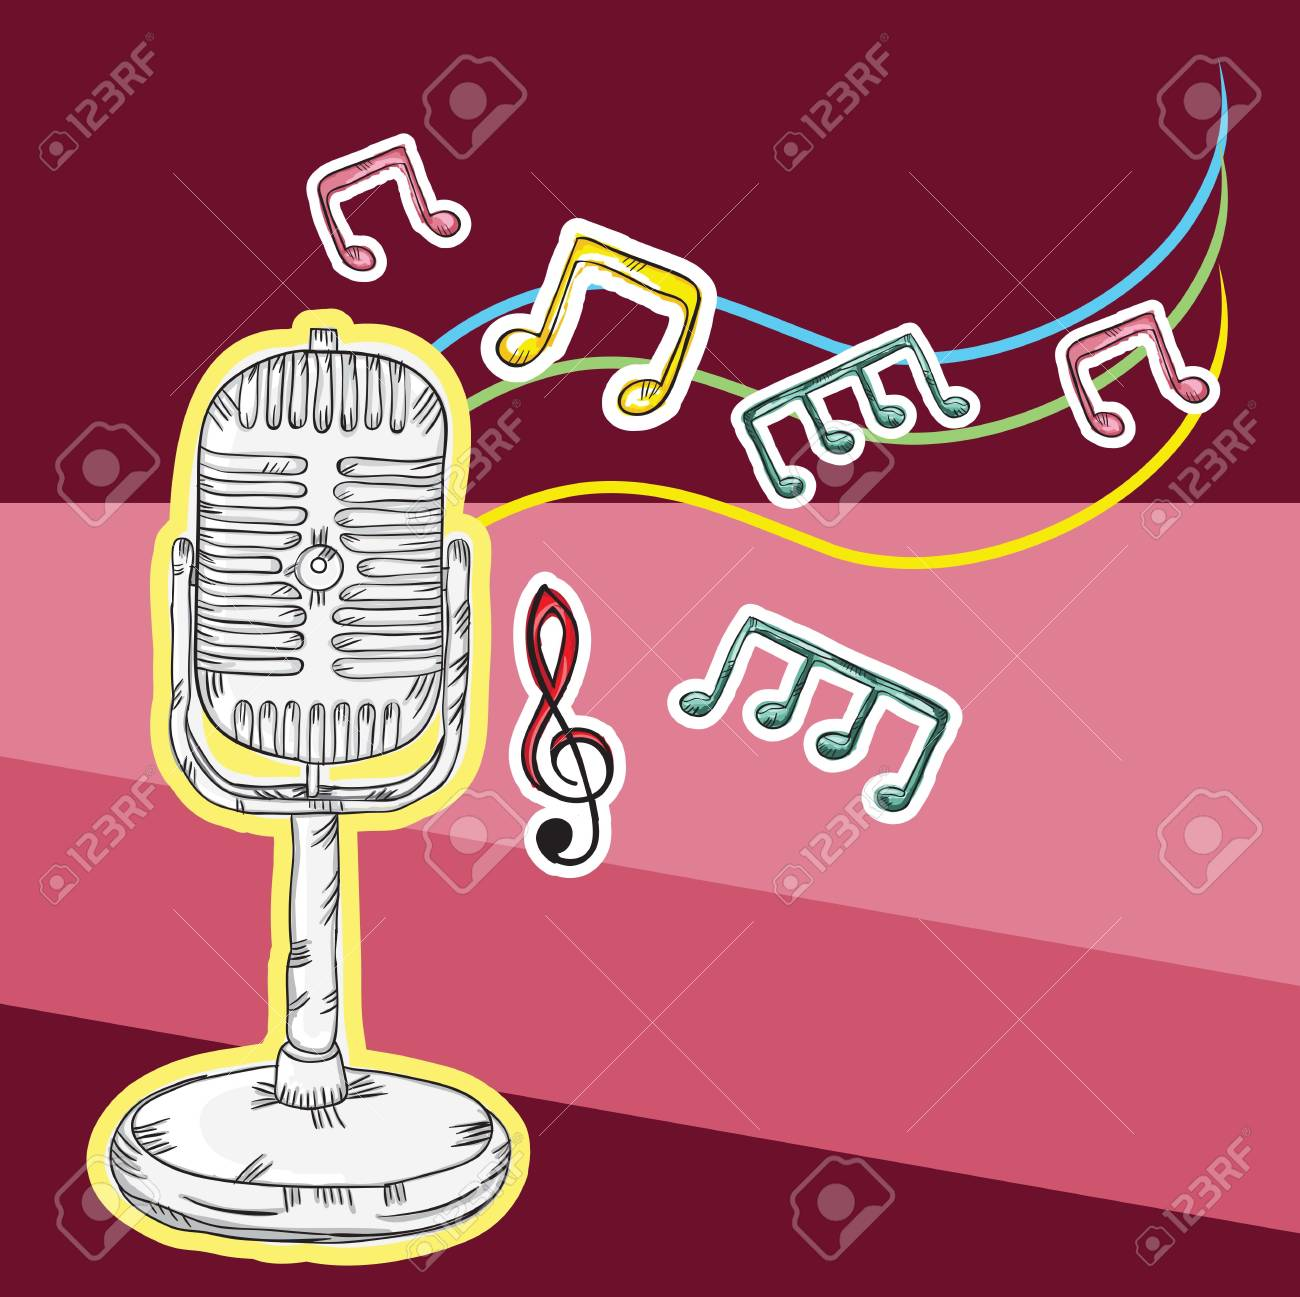 Colorful Background with musical elements Stock Vector - 18555440